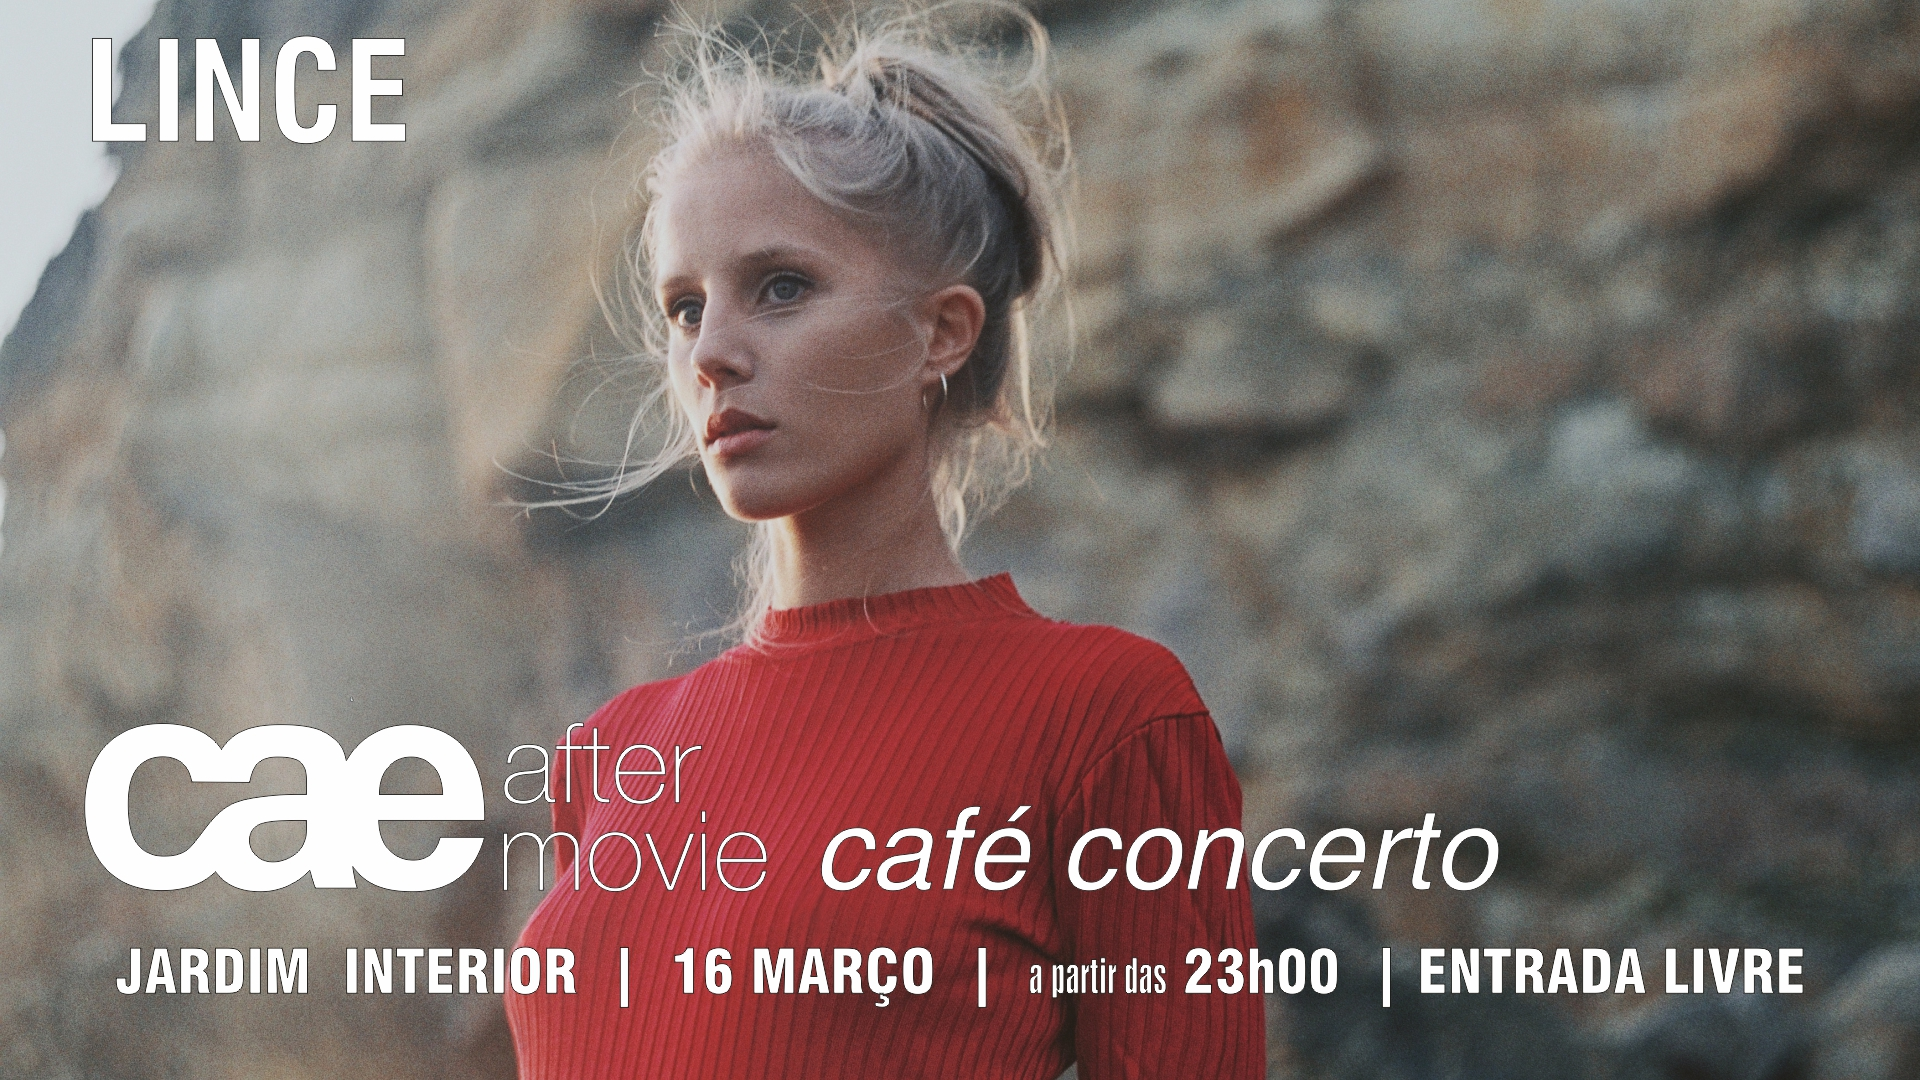 Cafe concerto LINCE